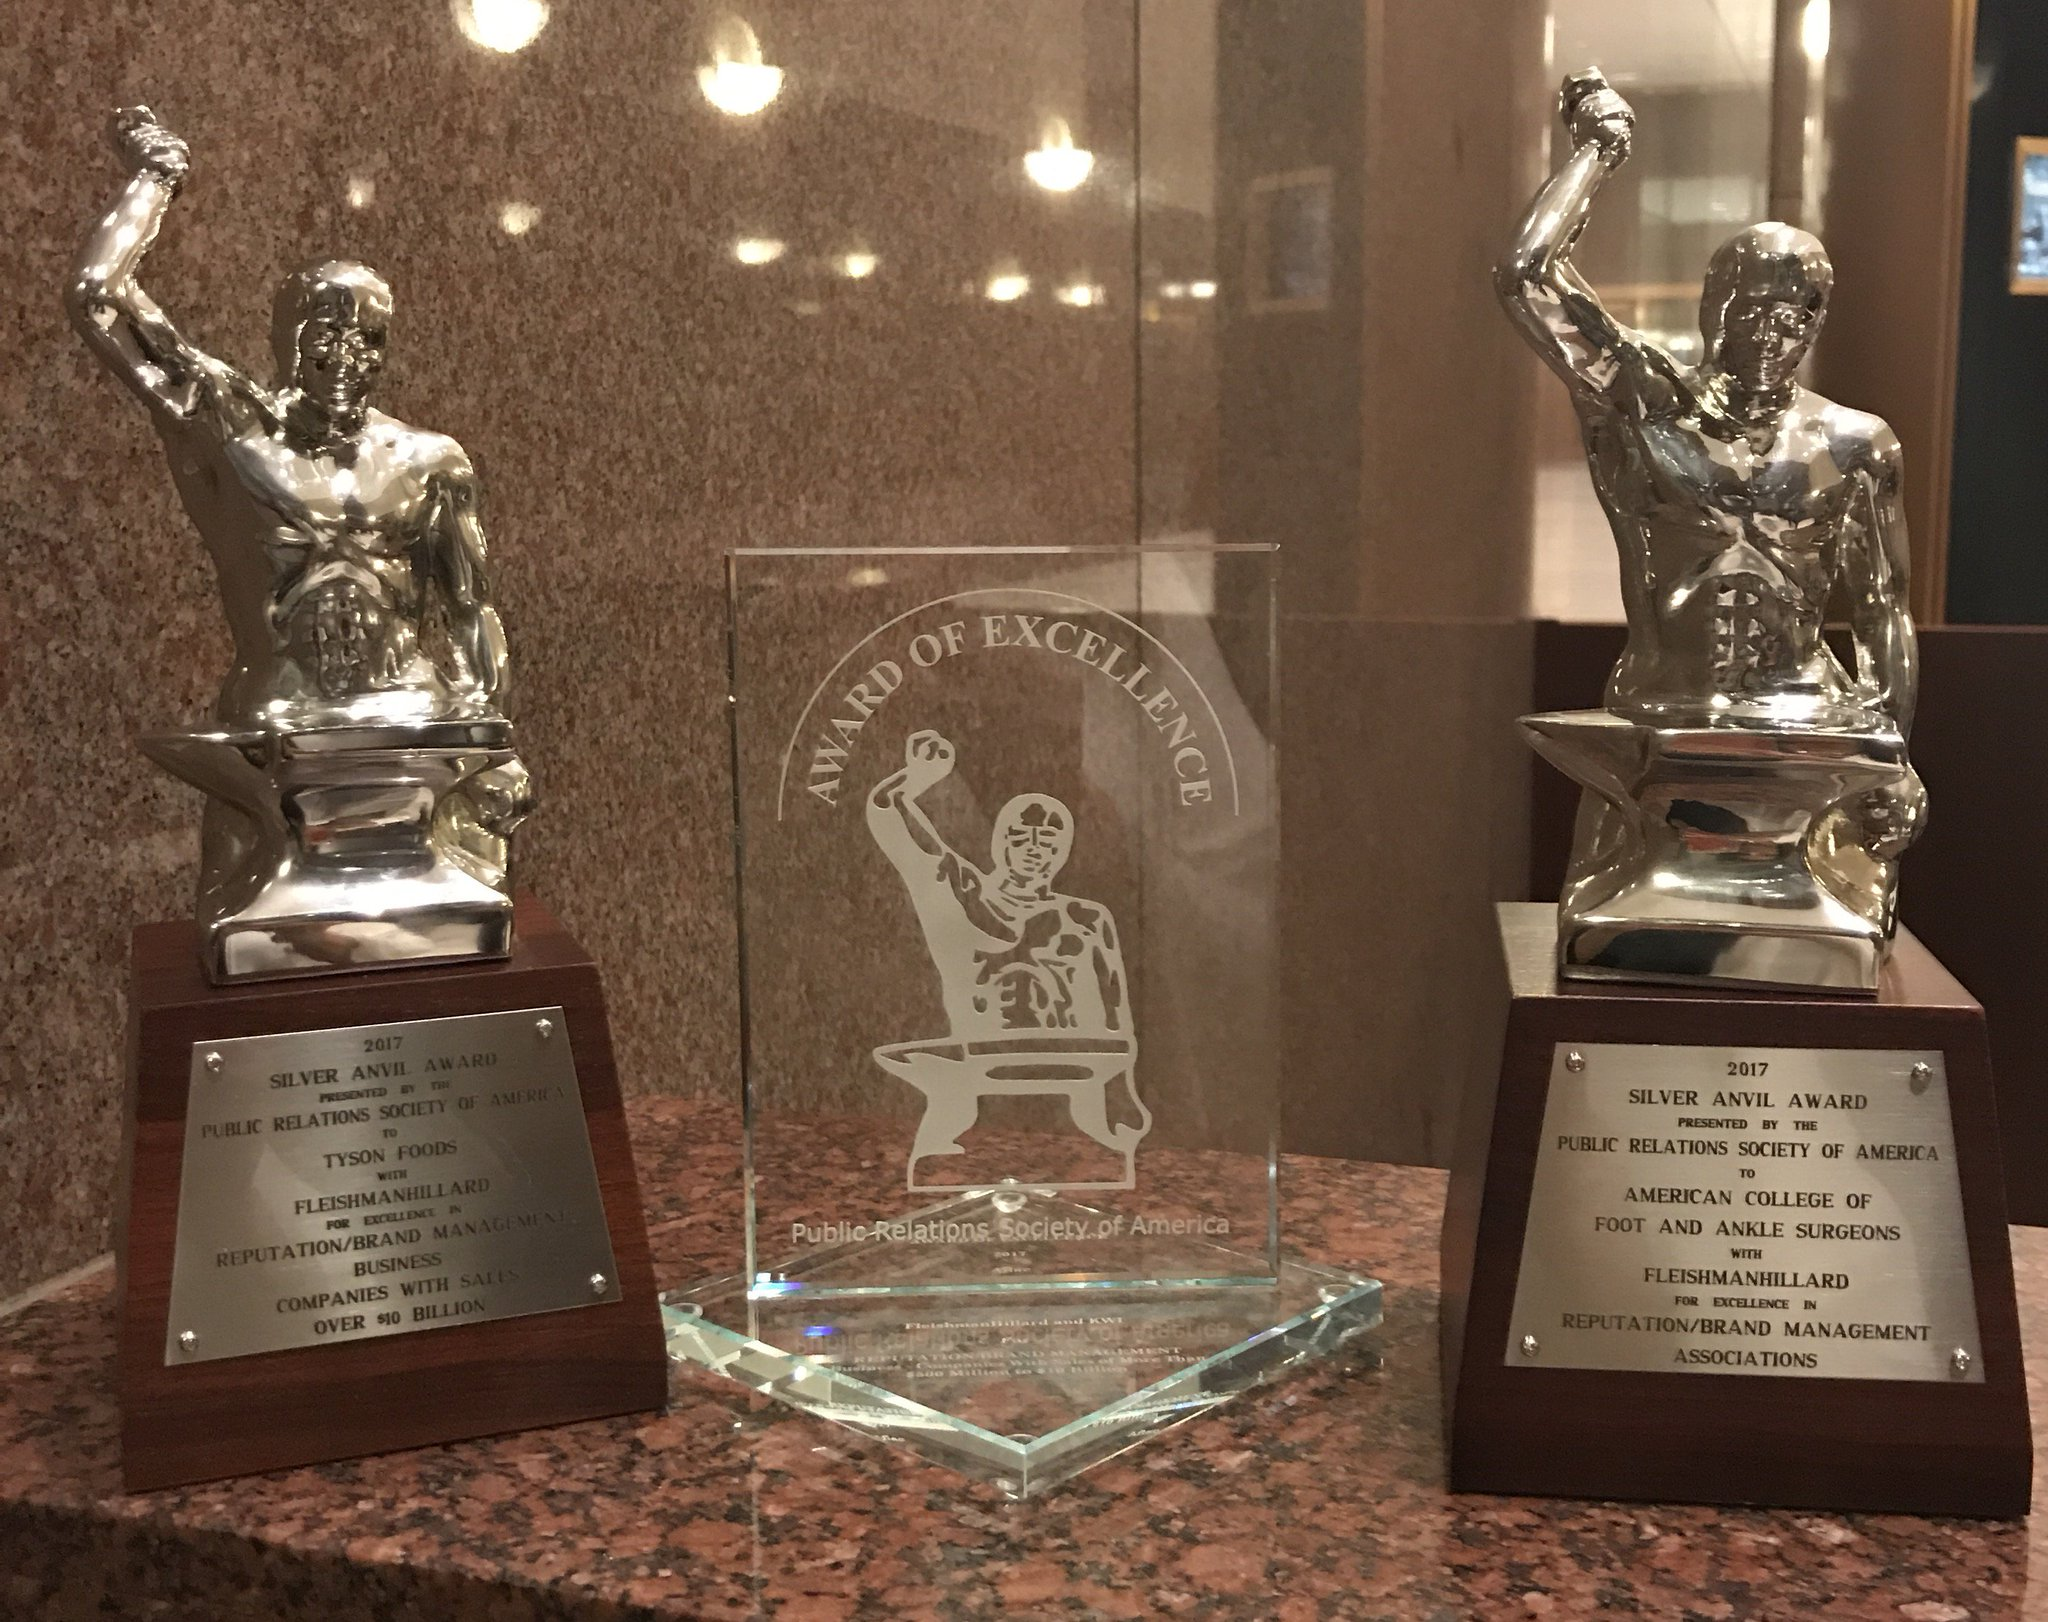 So proud of our team for bringing home some great wins at last night's #SilverAnvils2017! https://t.co/uR9RVDePtY https://t.co/oZ37MY91IB